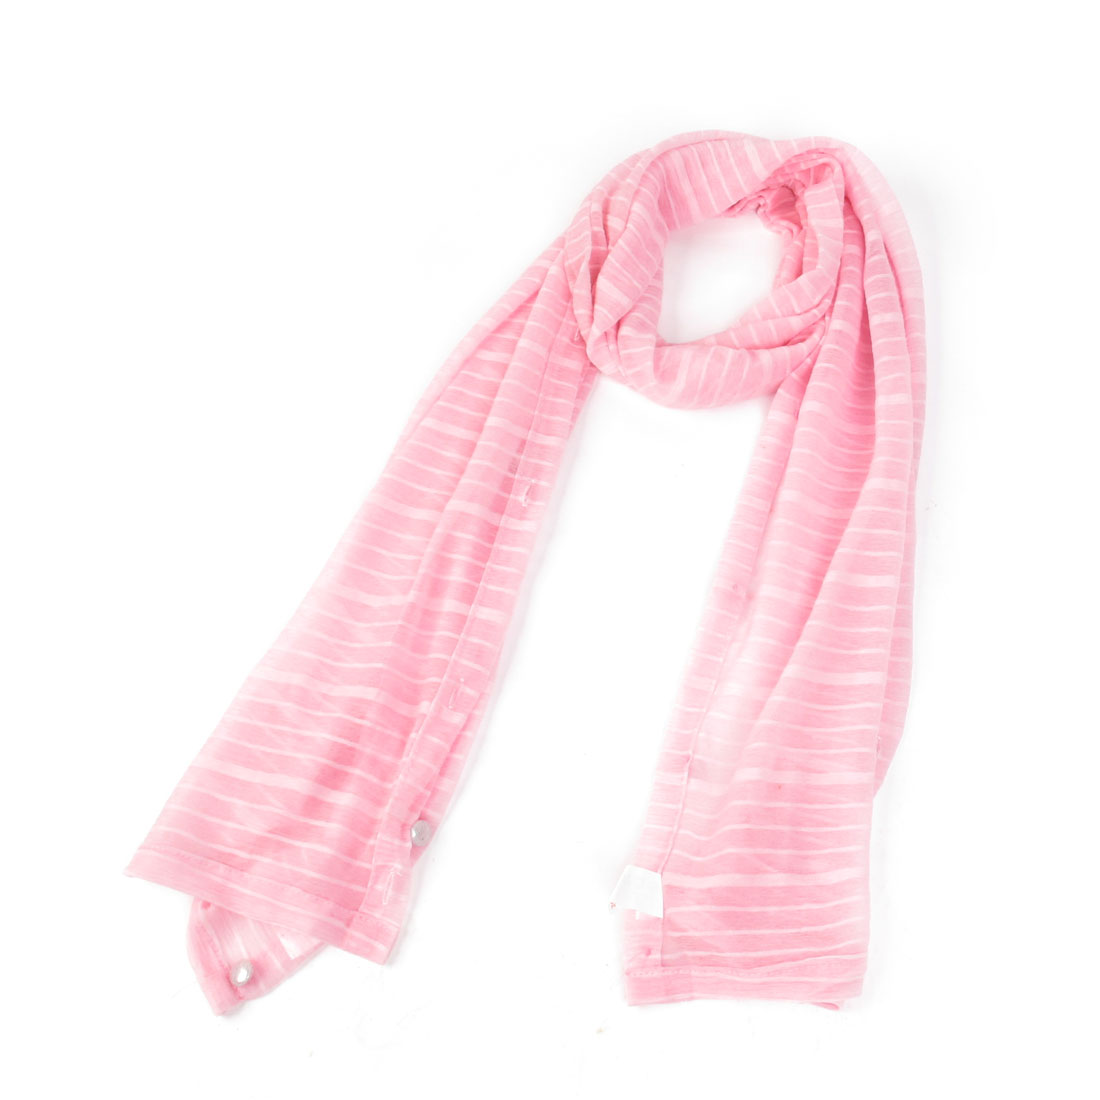 Woman Sun UV Protection Pink Sheer Stylish Shoulder Wrap Scarf Stole Shawl